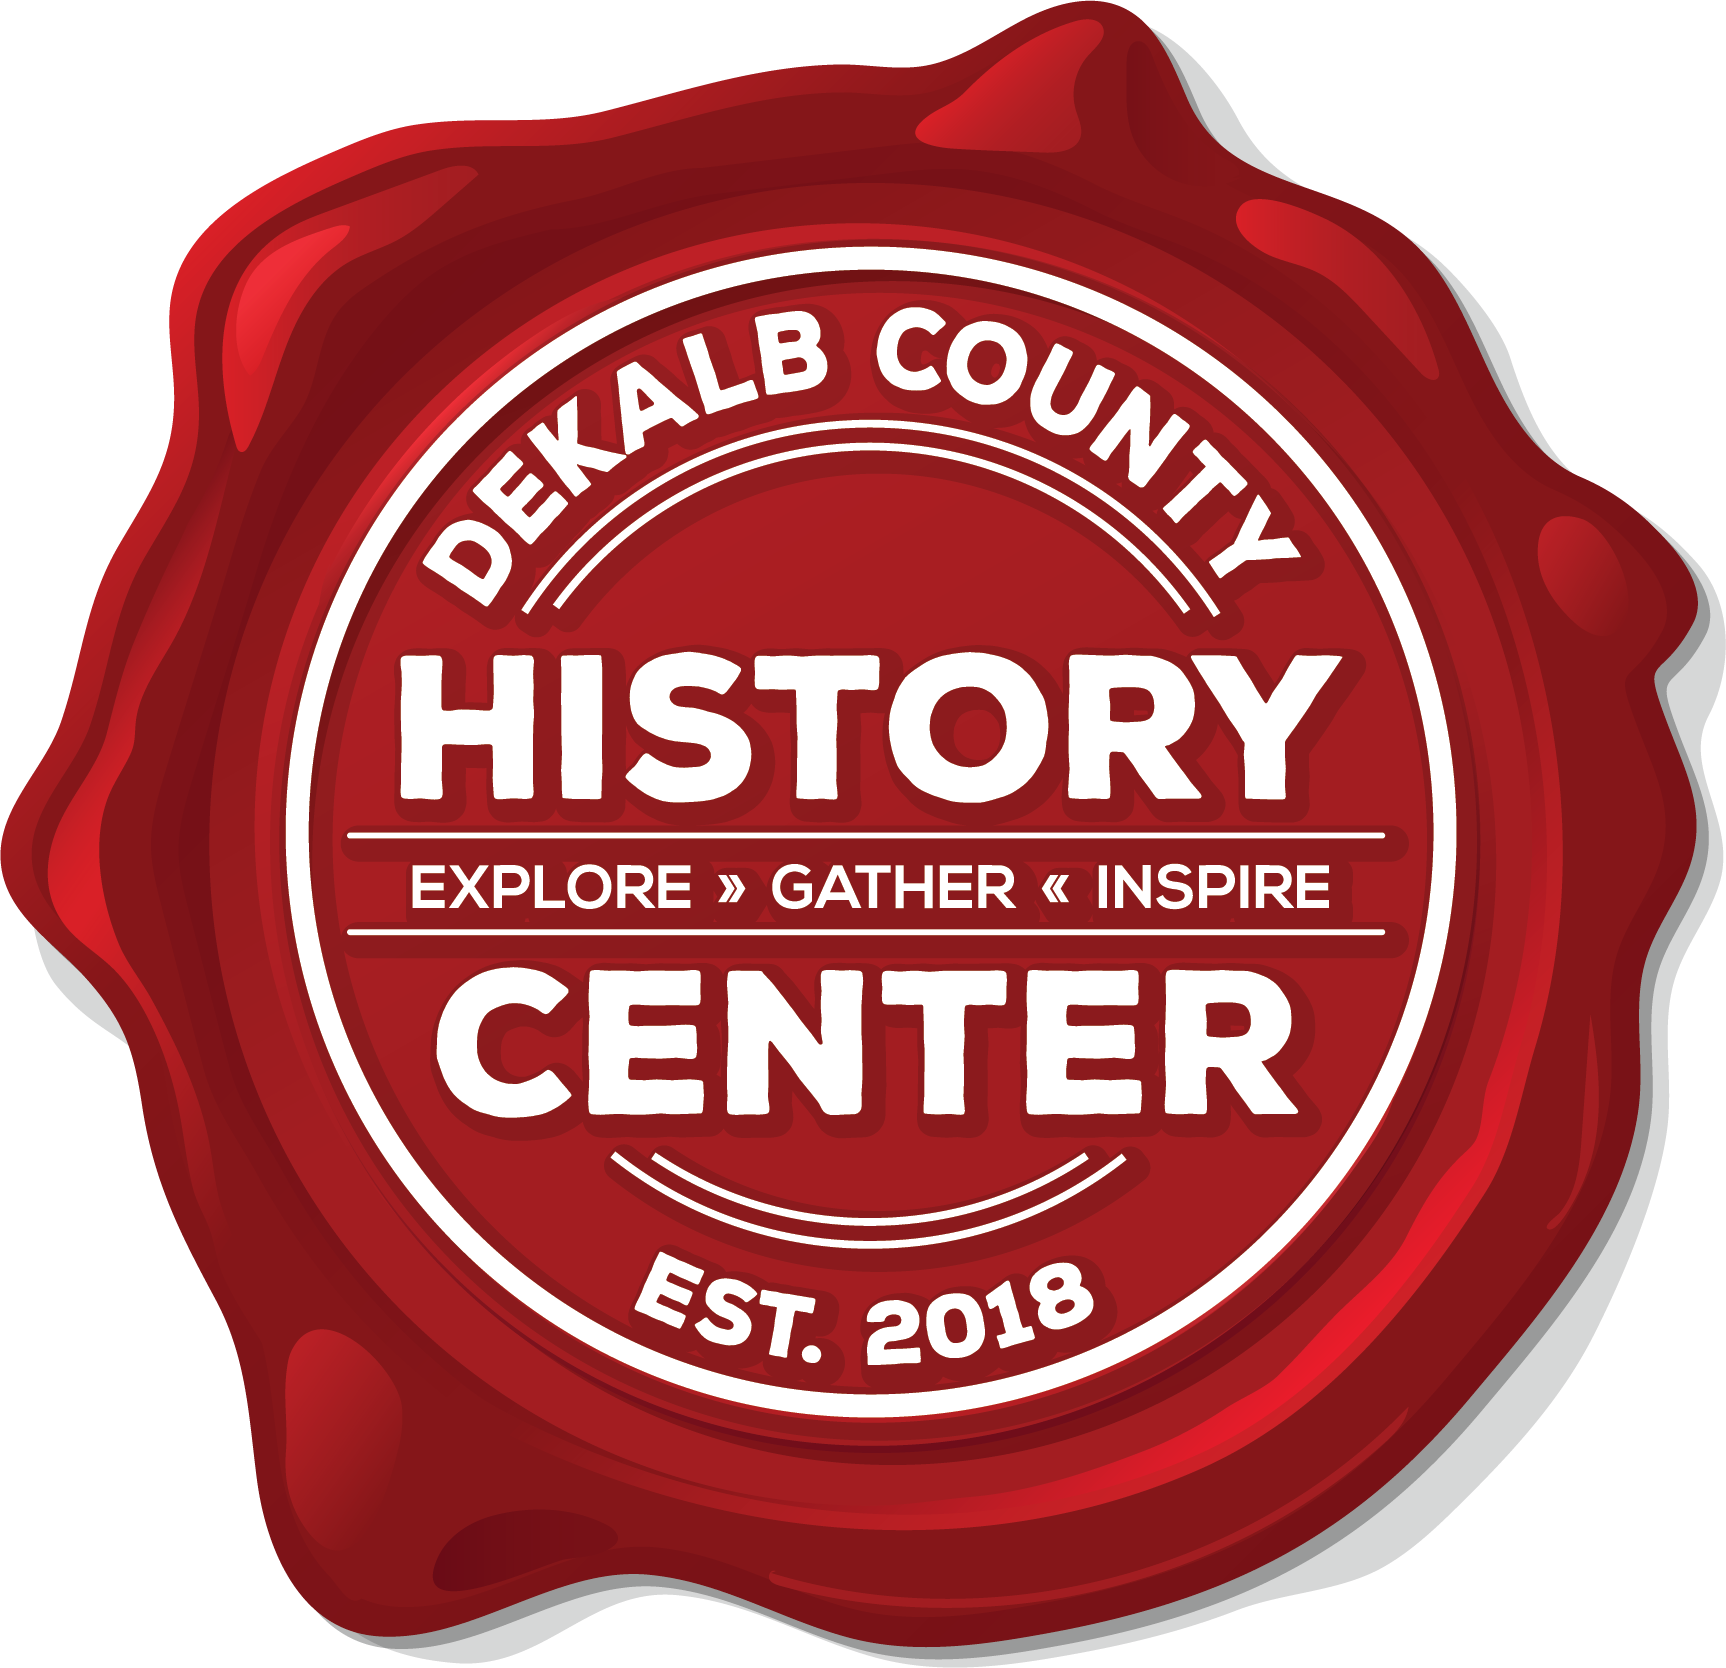 DeKalb County History Center seal logo